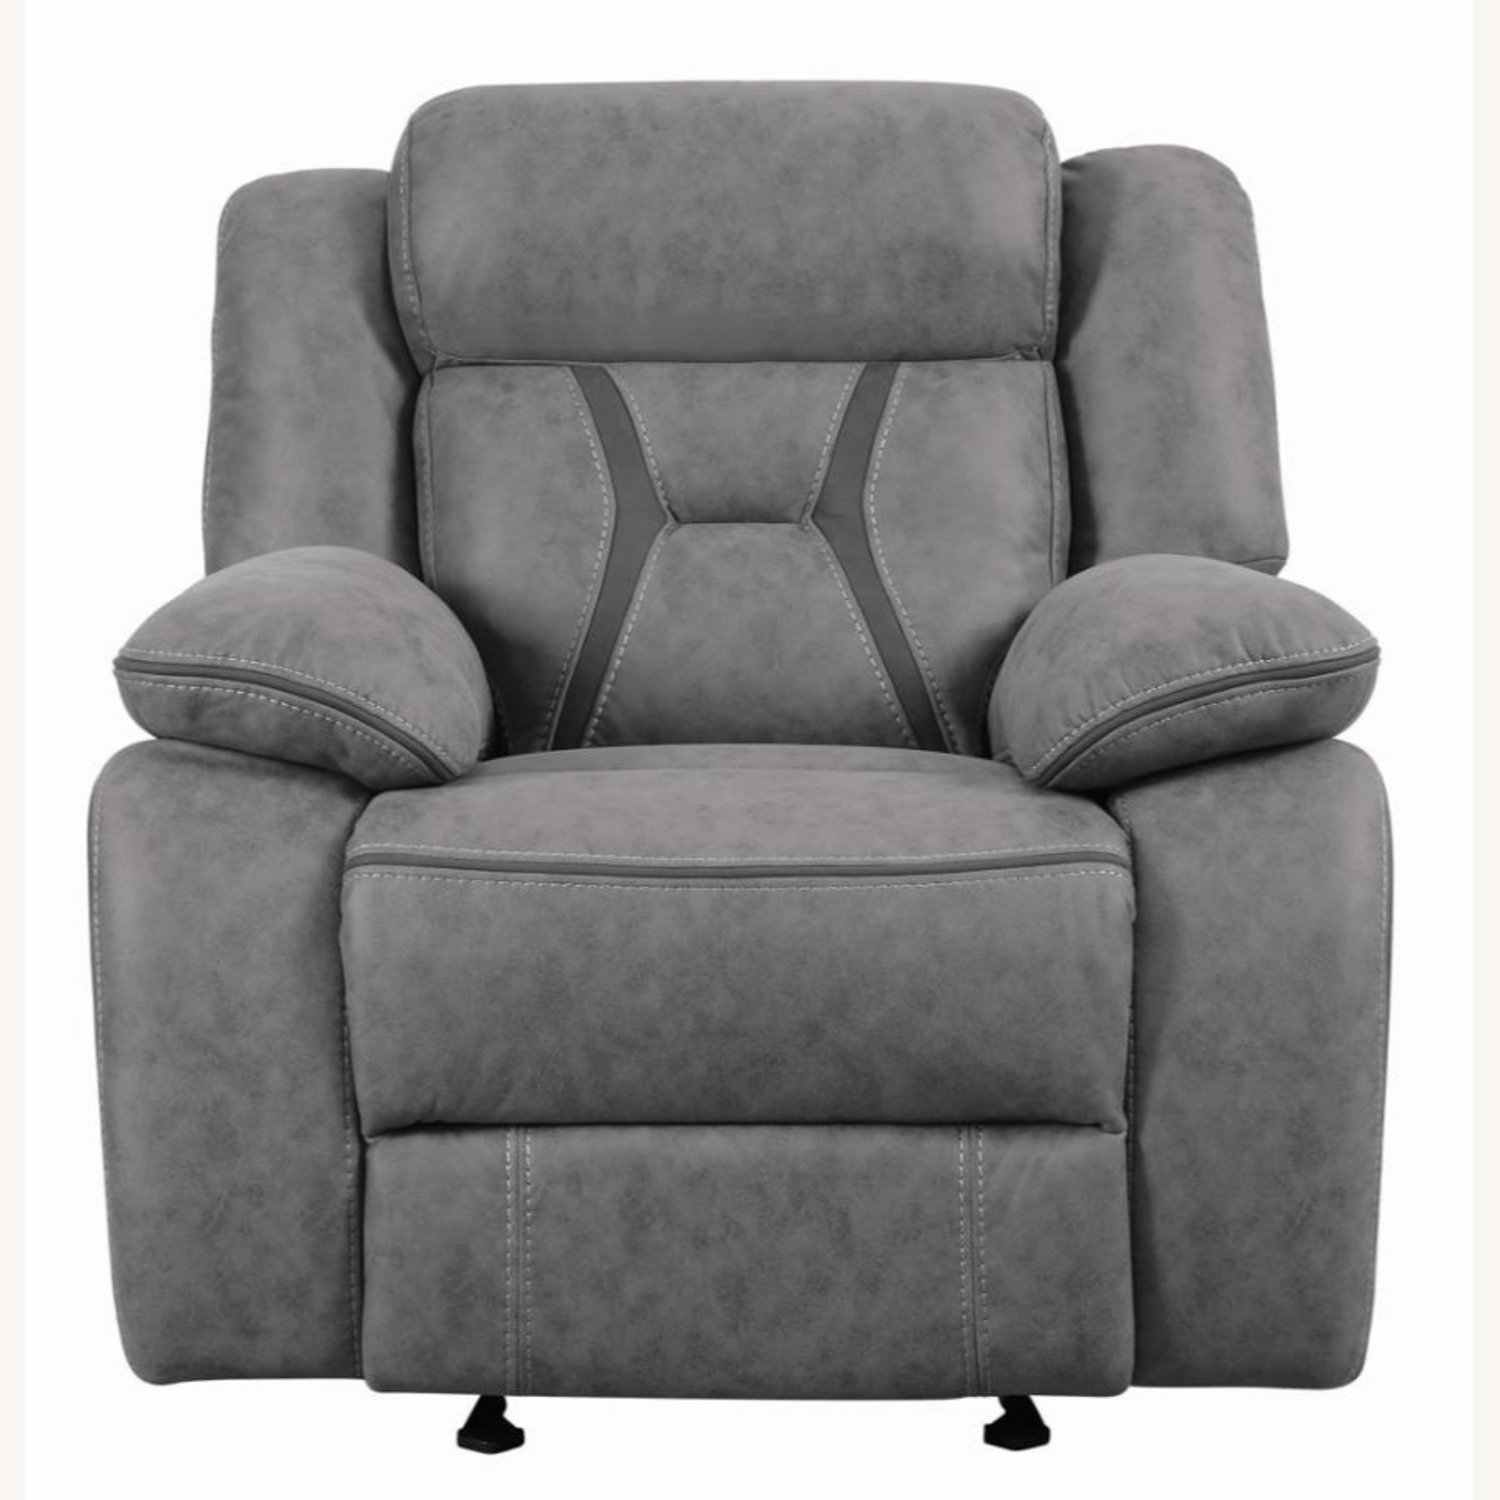 Glider Recliner Chair In Grey Suede Fabric - image-0